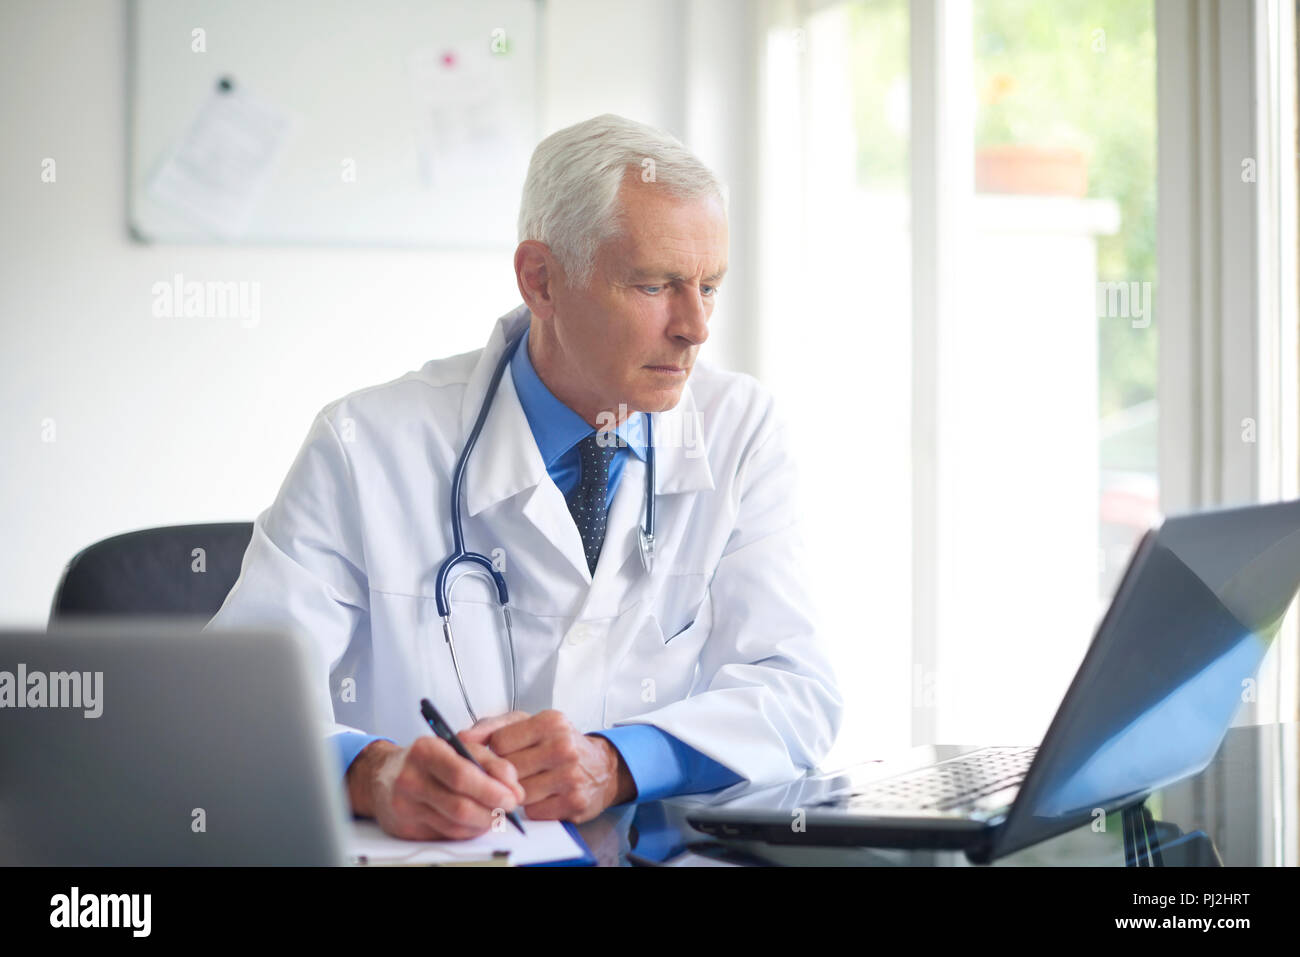 Portrait of male doctor writing down the diagnosis while sitting at consulting room. - Stock Image